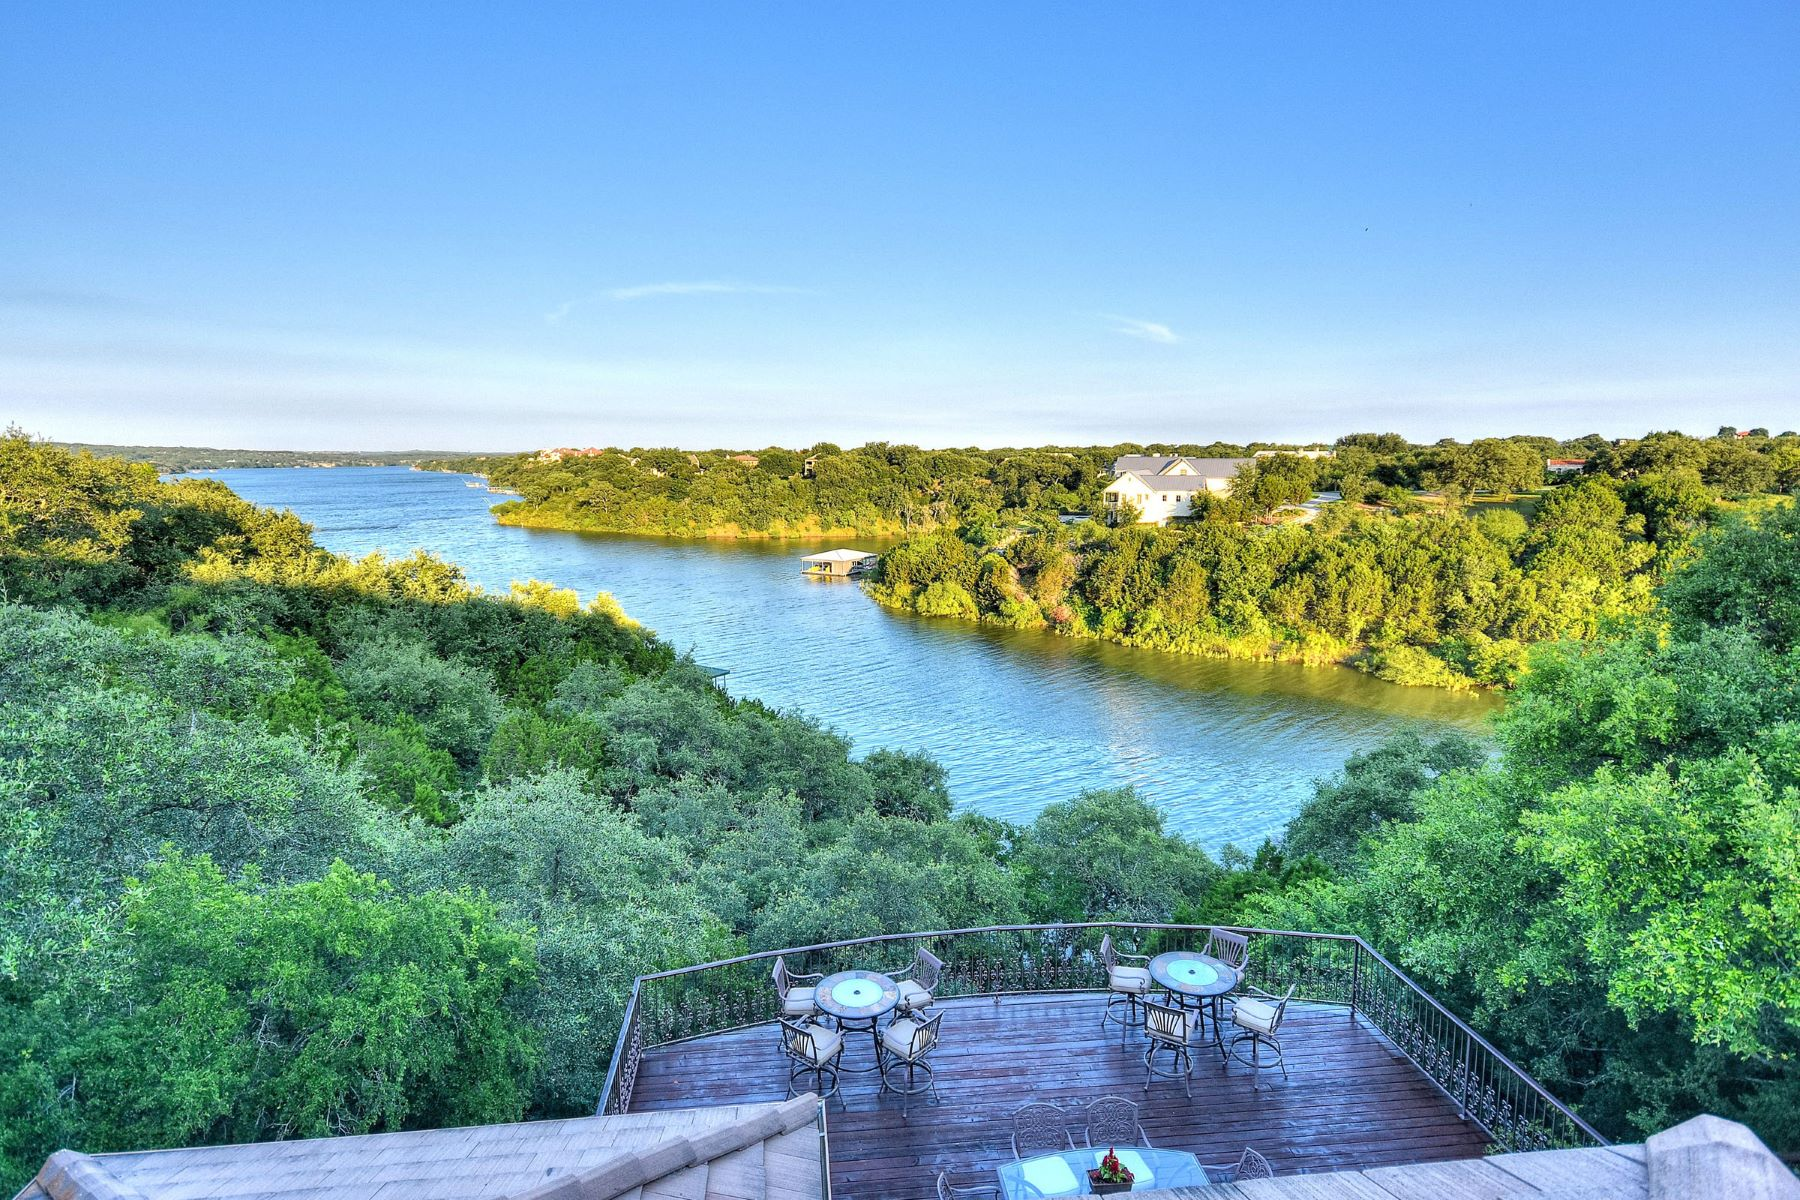 Single Family Home for Sale at The Ideal Lakeside Retreat 2703 Sailboat PASS Spicewood, Texas 78669 United States